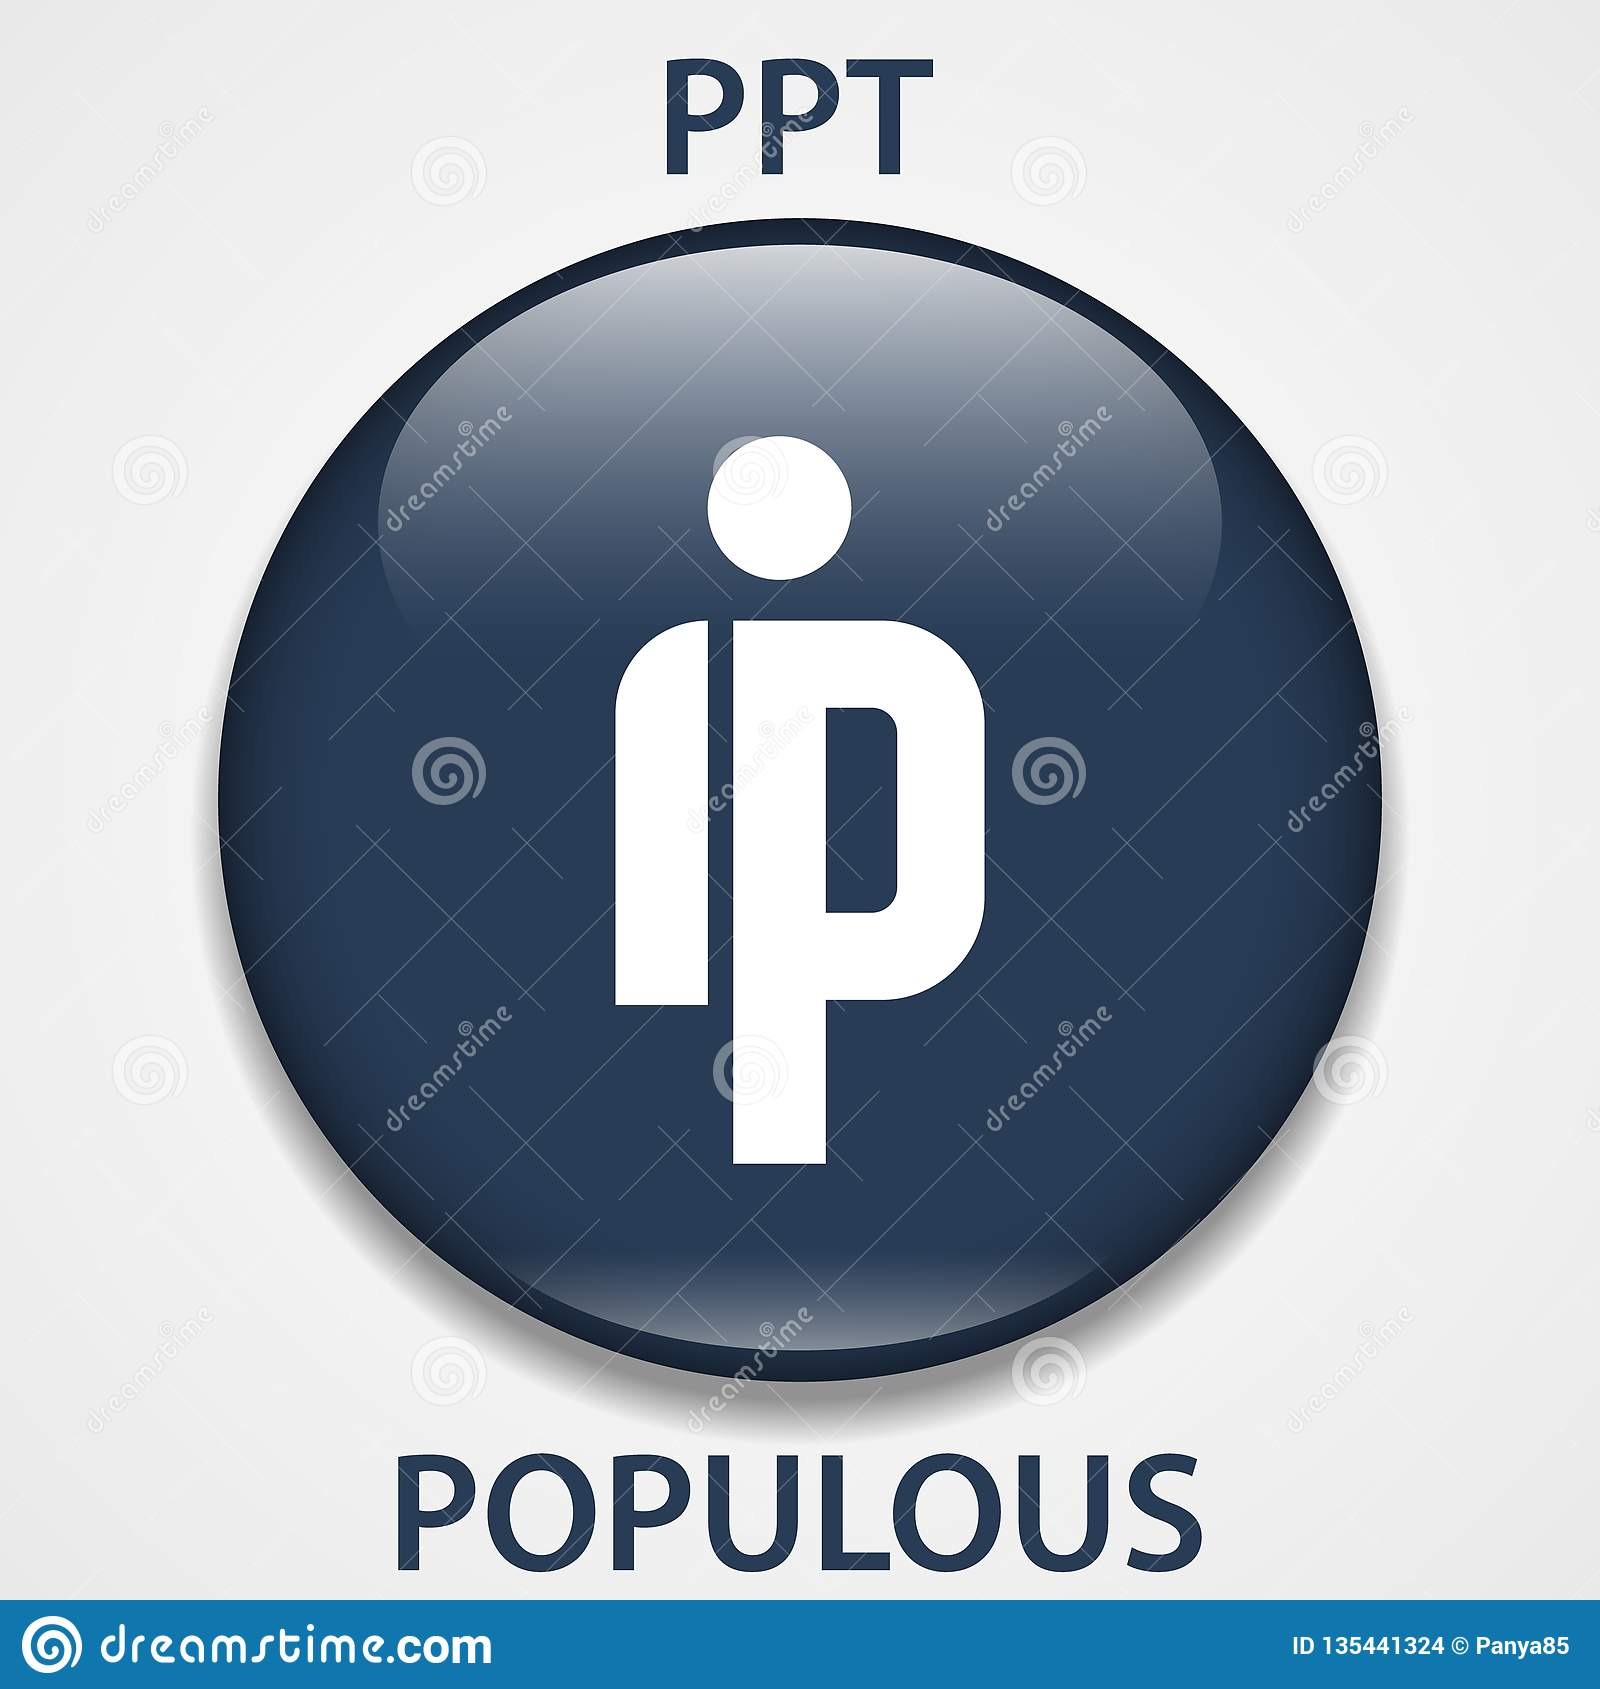 Populous Coin cryptocurrency blockchain icon. Virtual electronic, internet money or cryptocoin symbol, logo